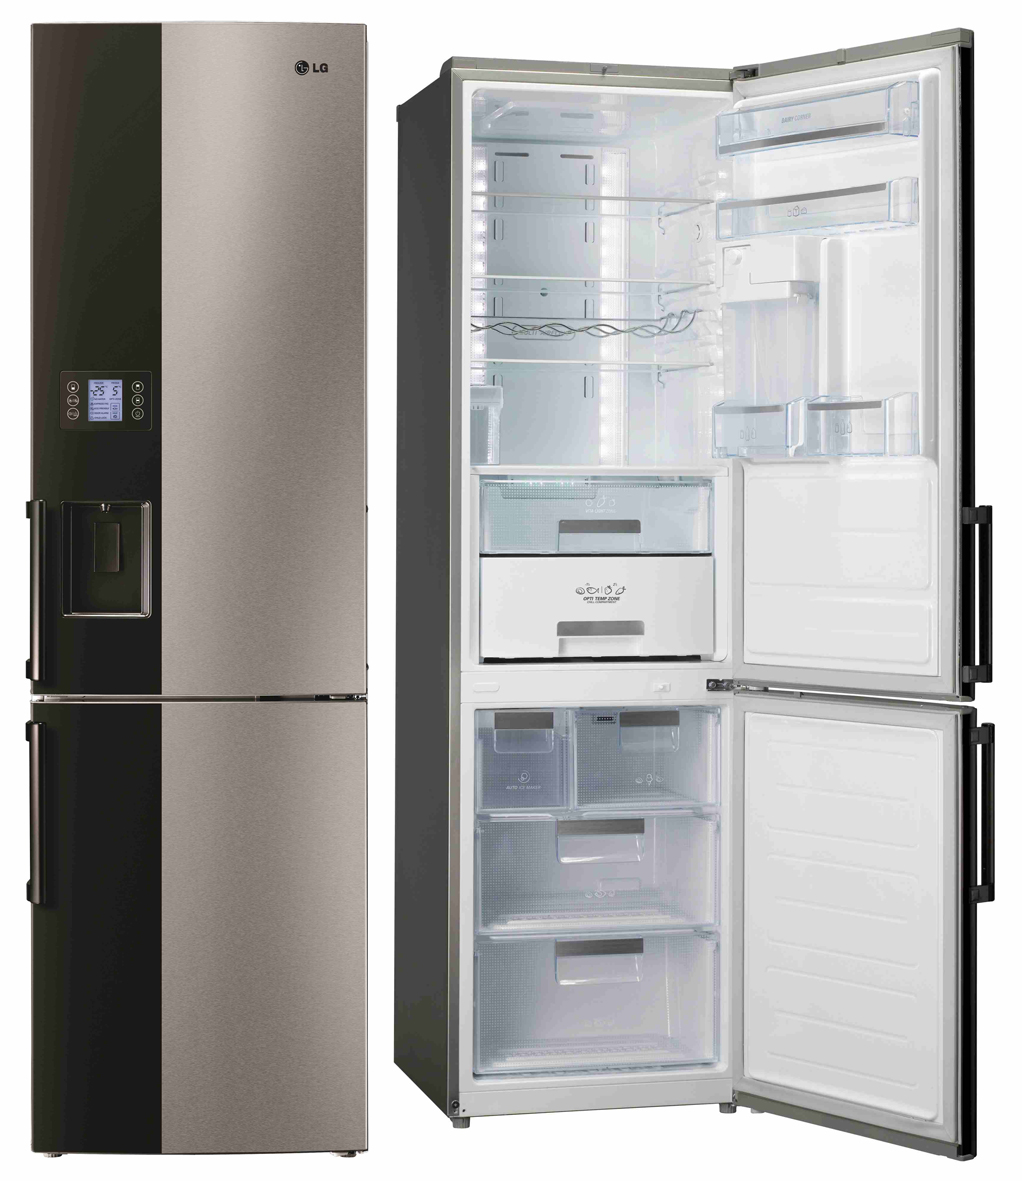 mit auto icemaker lg k hl gefrierkombination gb 7143 a2bz mit auto. Black Bedroom Furniture Sets. Home Design Ideas